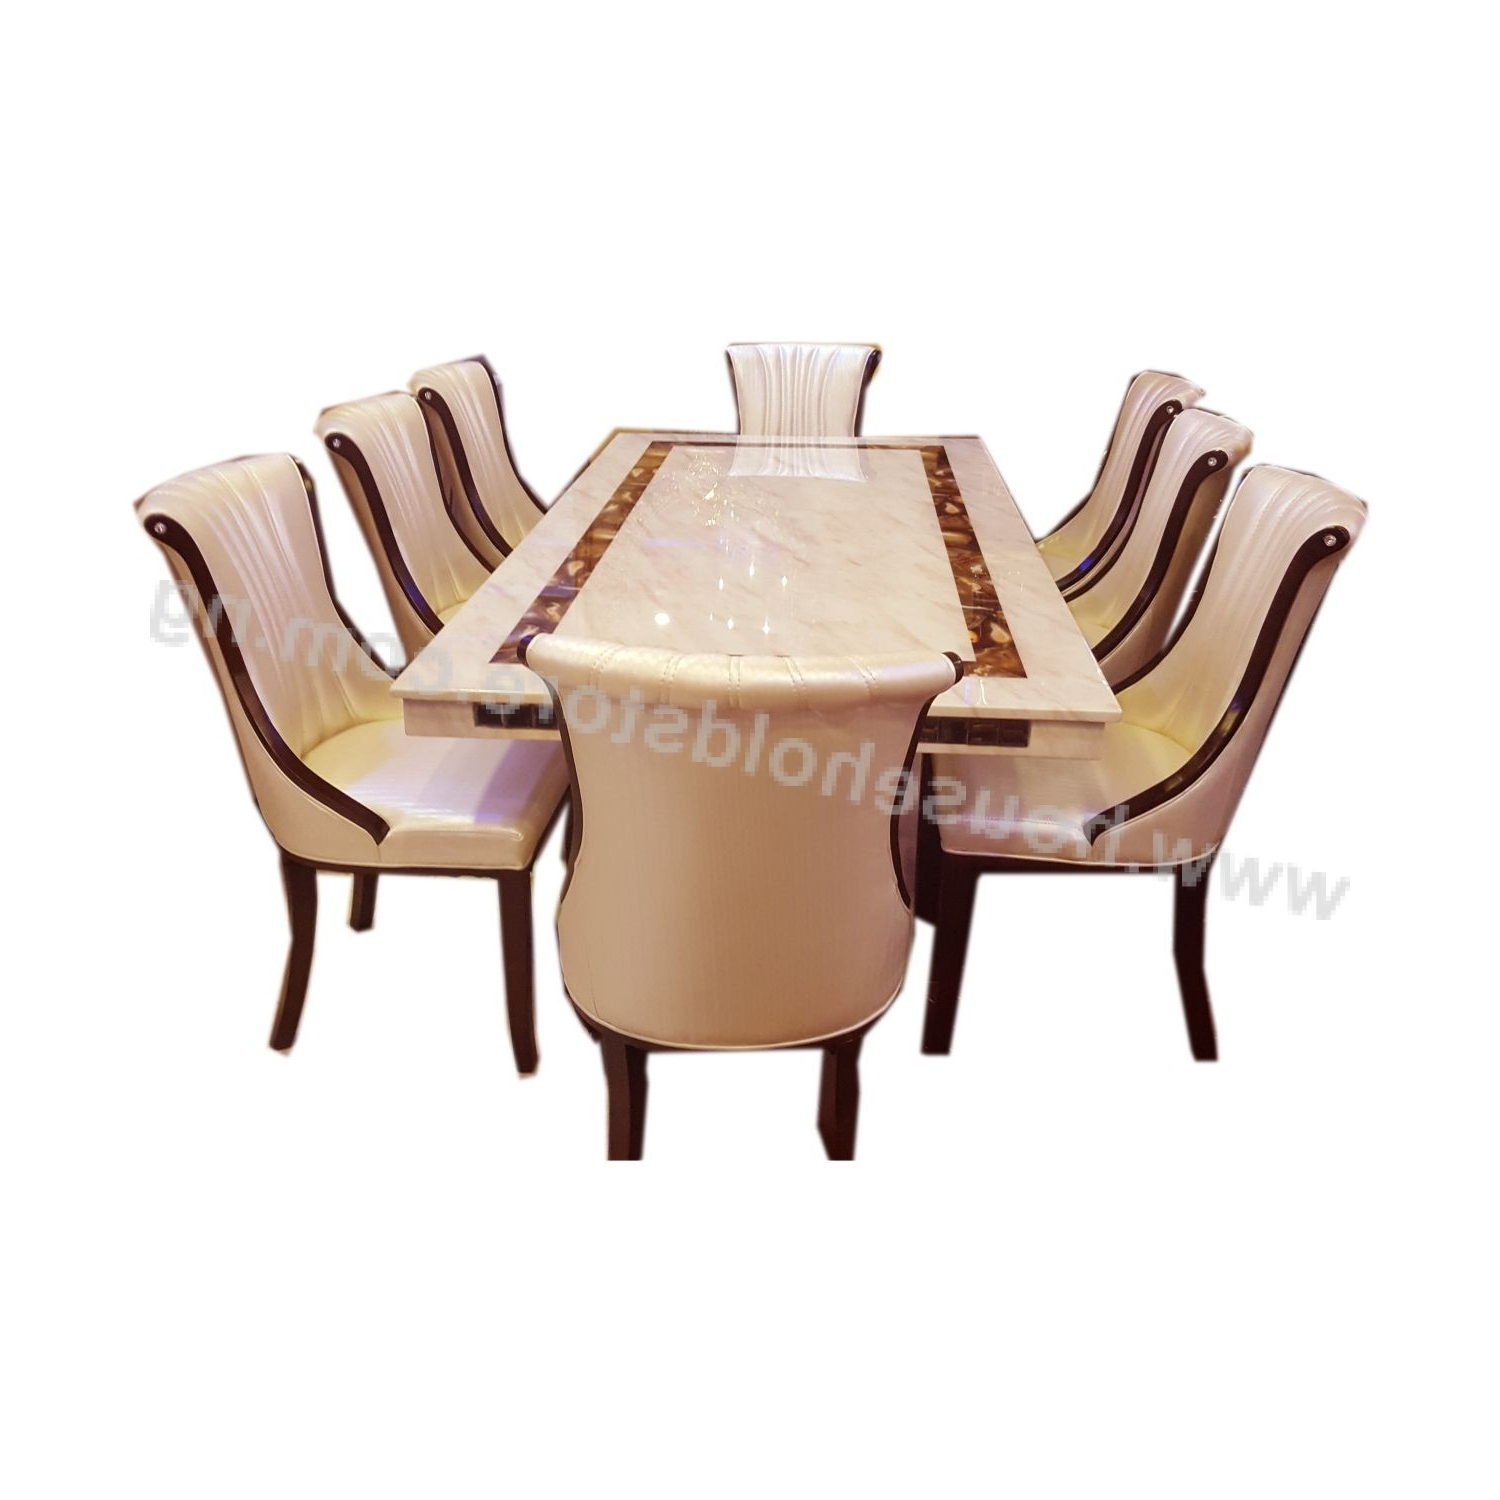 Household Store: Online Shopping in Most Popular Marble Dining Tables Sets